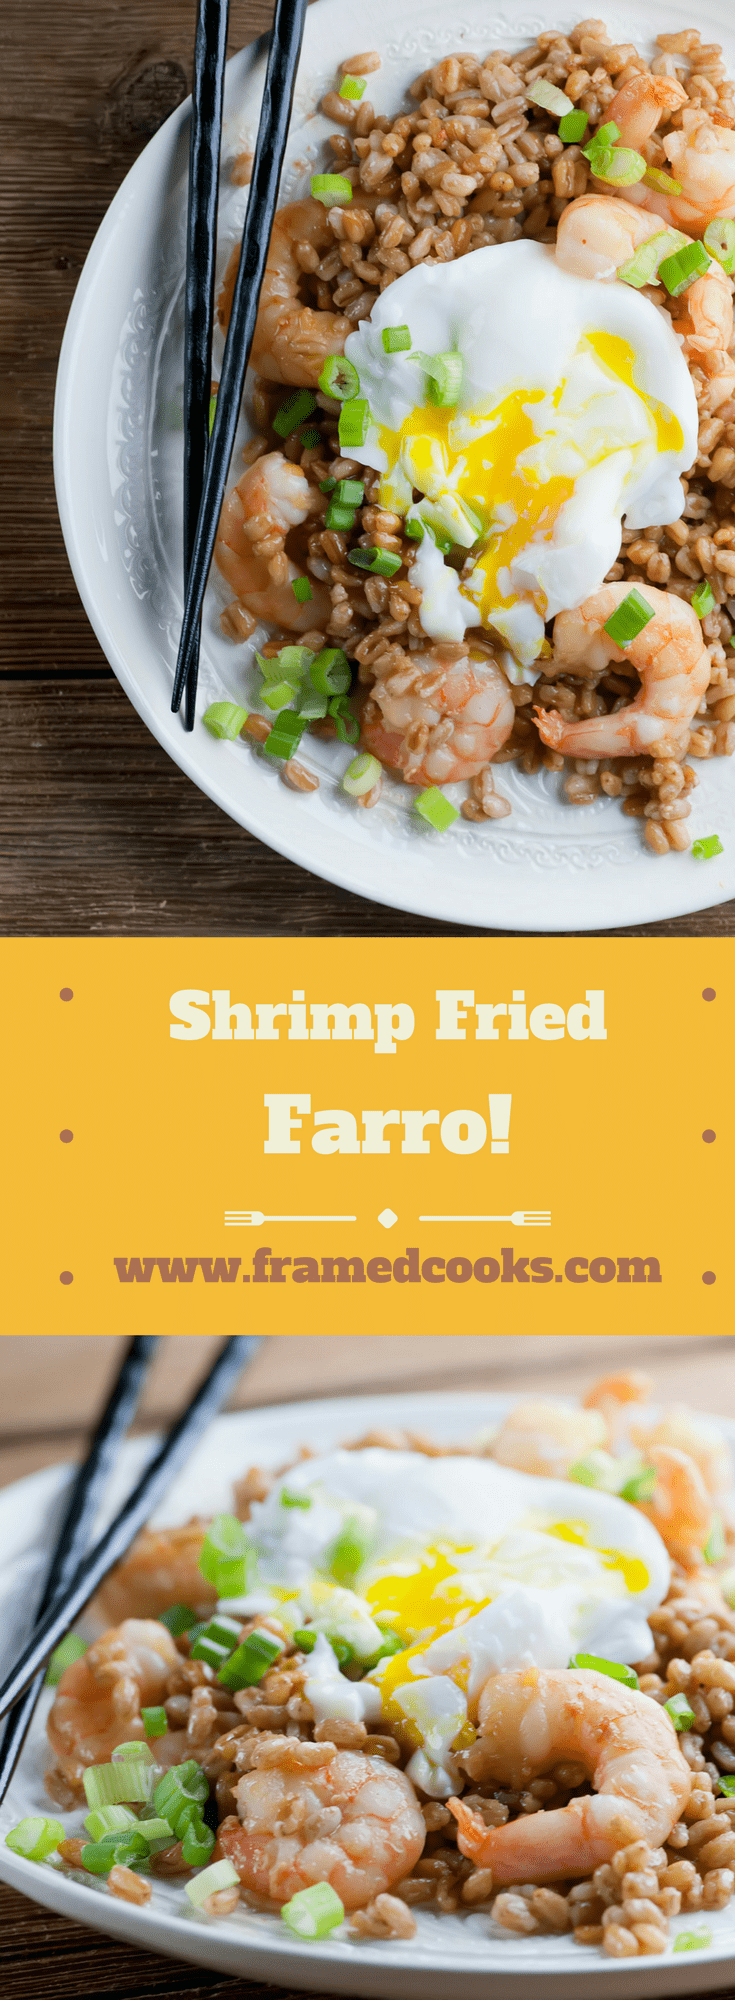 Move over rice! This recipe for shrimp fried farro is a delicious new spin on an old stir-fry favorite, with a poached egg on top for good measure.